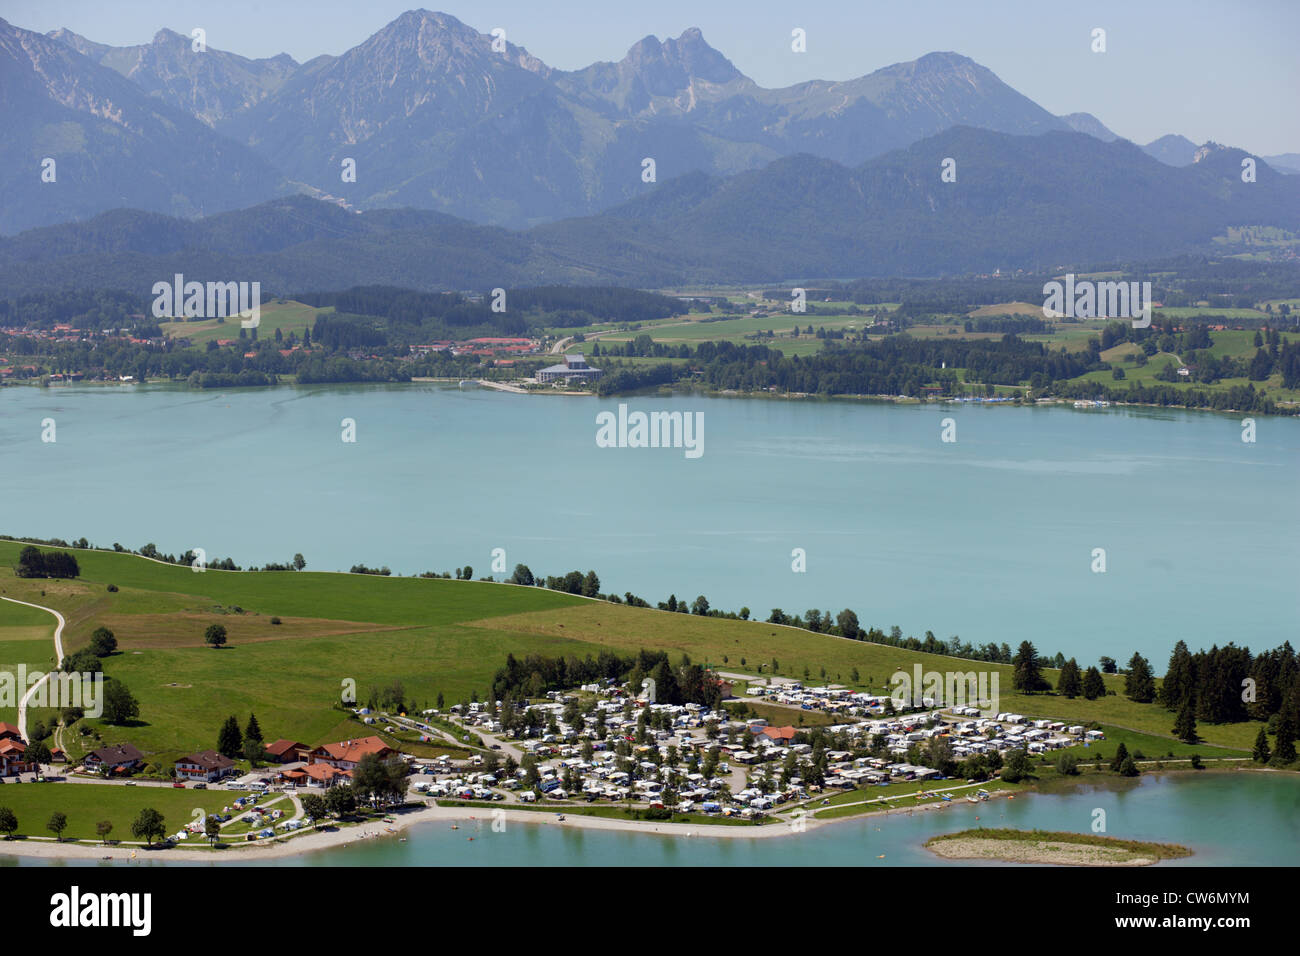 camping ground in Brunnen and Koenig Ludwig Musical at Forggensee, alps in the background, Germany, Bavaria, Allgaeu - Stock Image